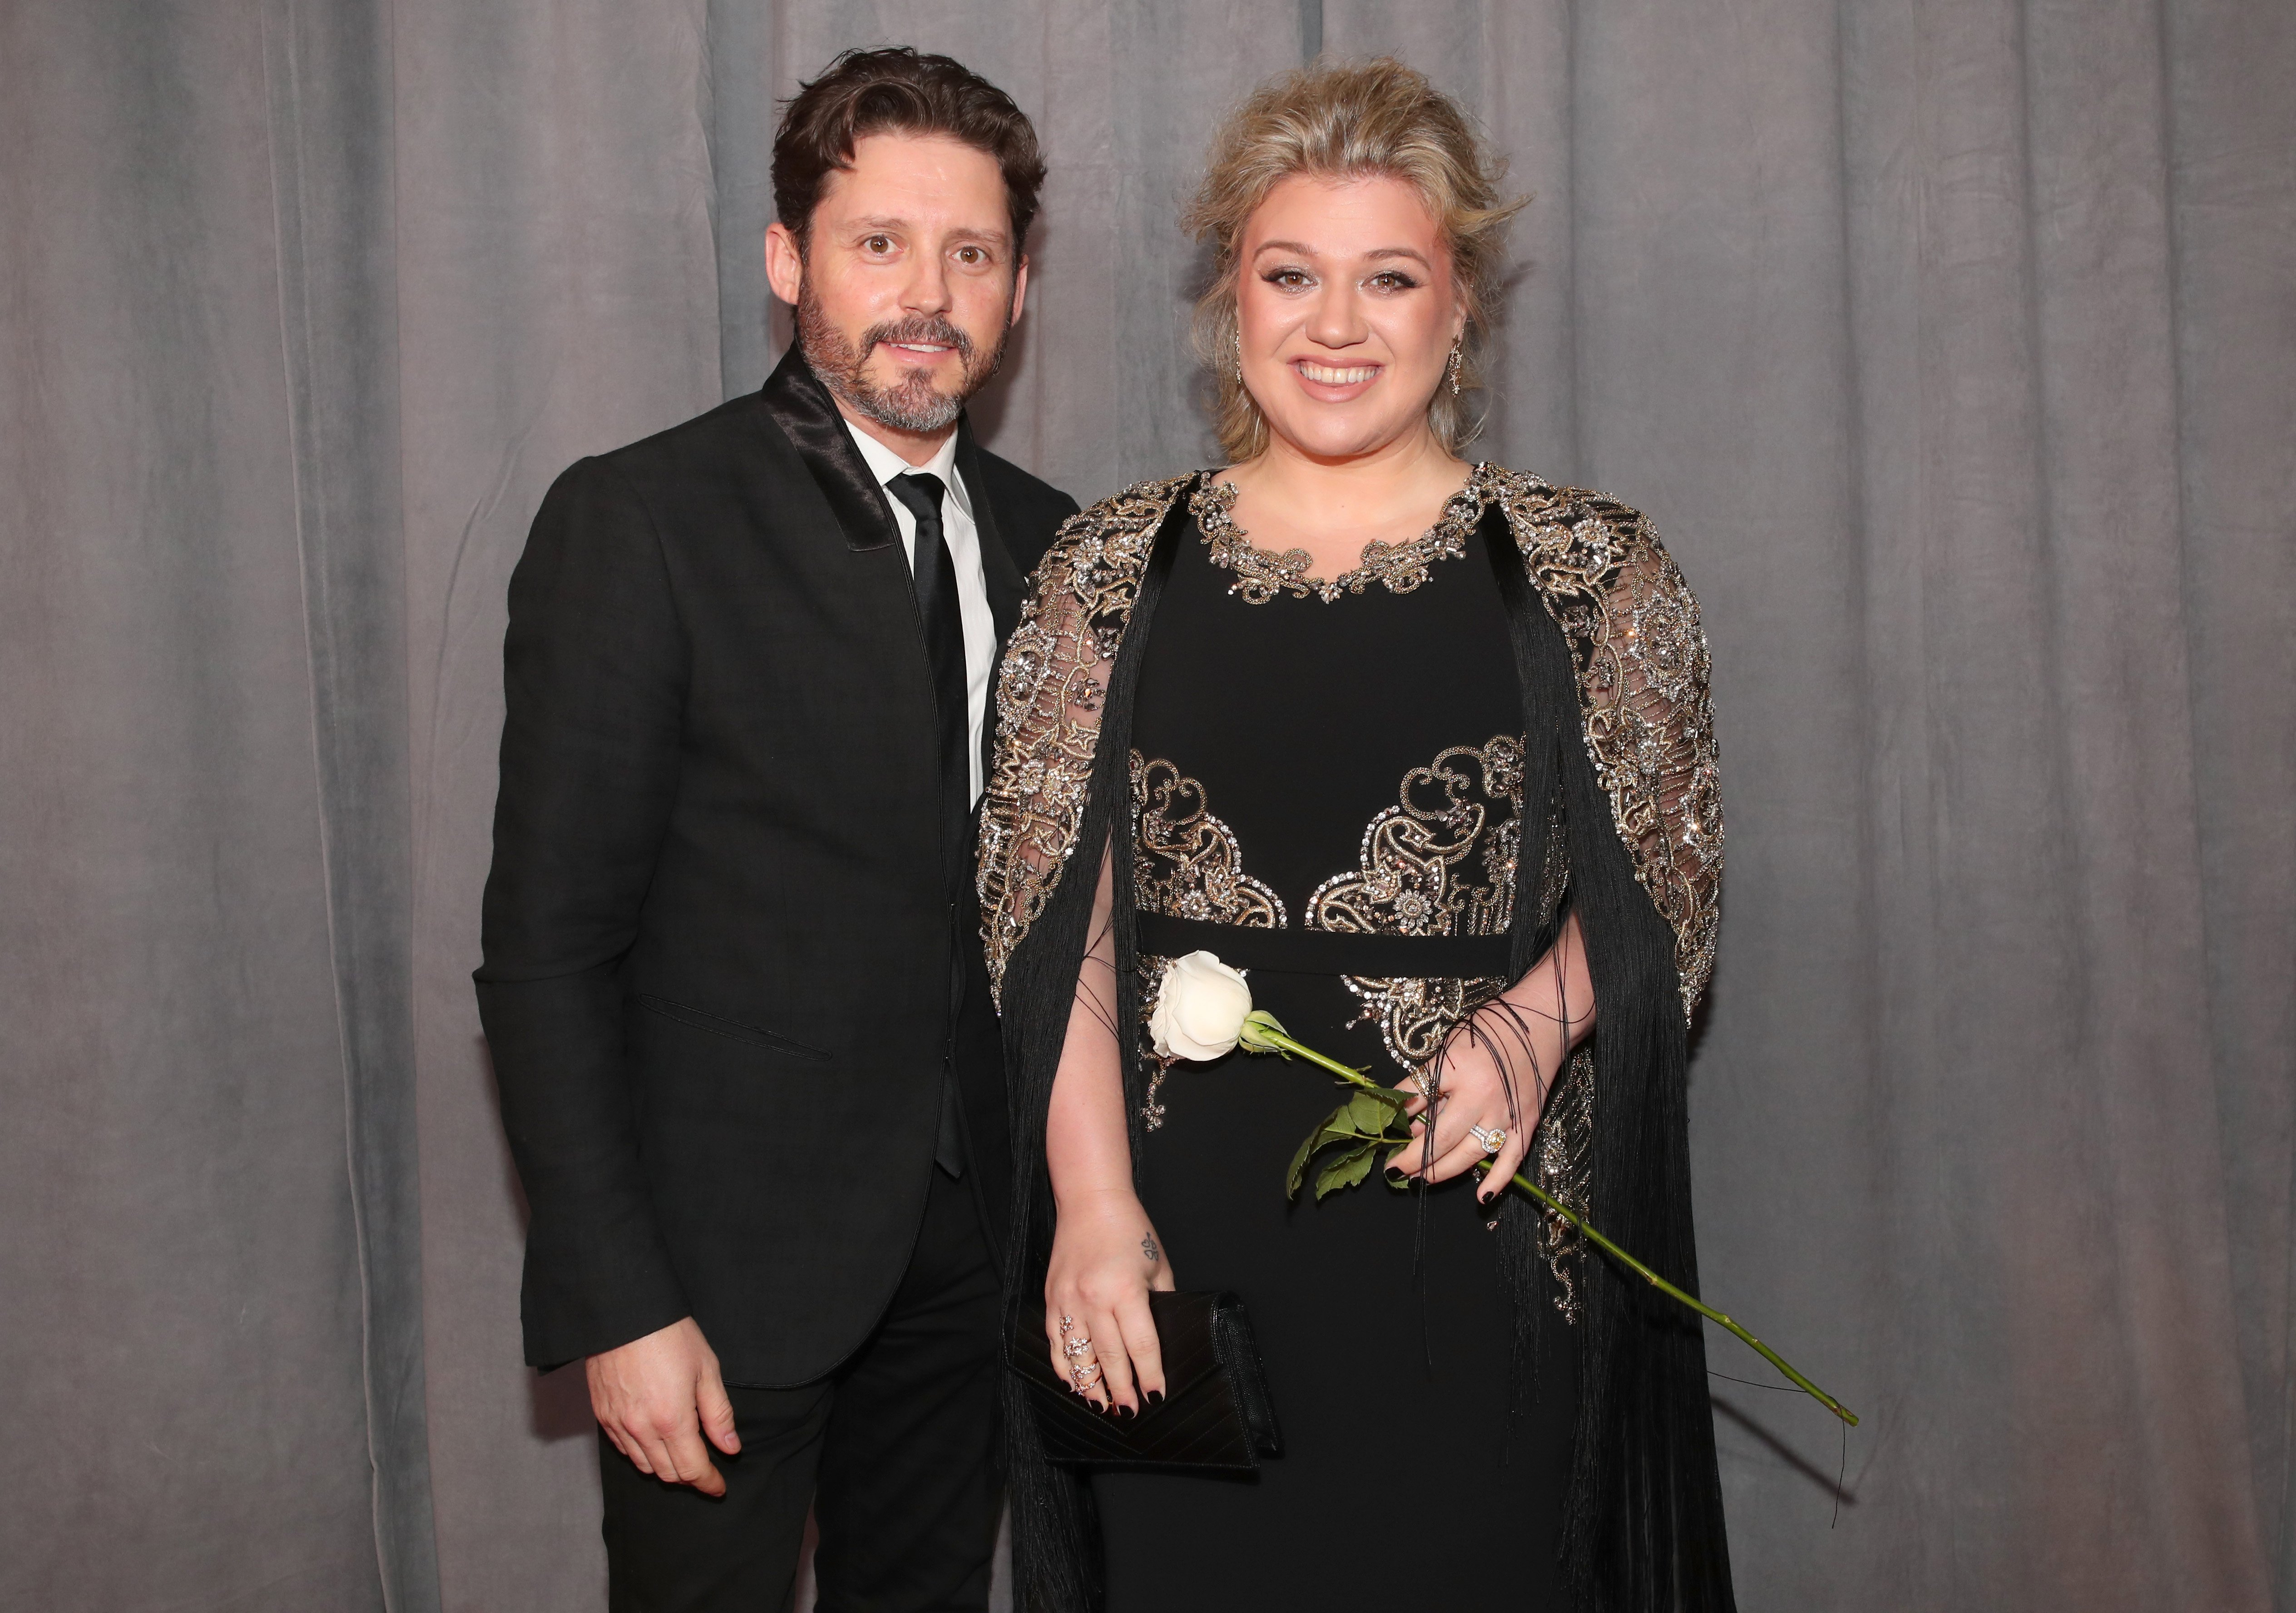 Kelly Clarkson and her husband Brandon Blackstock attend the 60th Annual Grammy Awards in New York City on January 28, 2018 | Photo: Getty Images